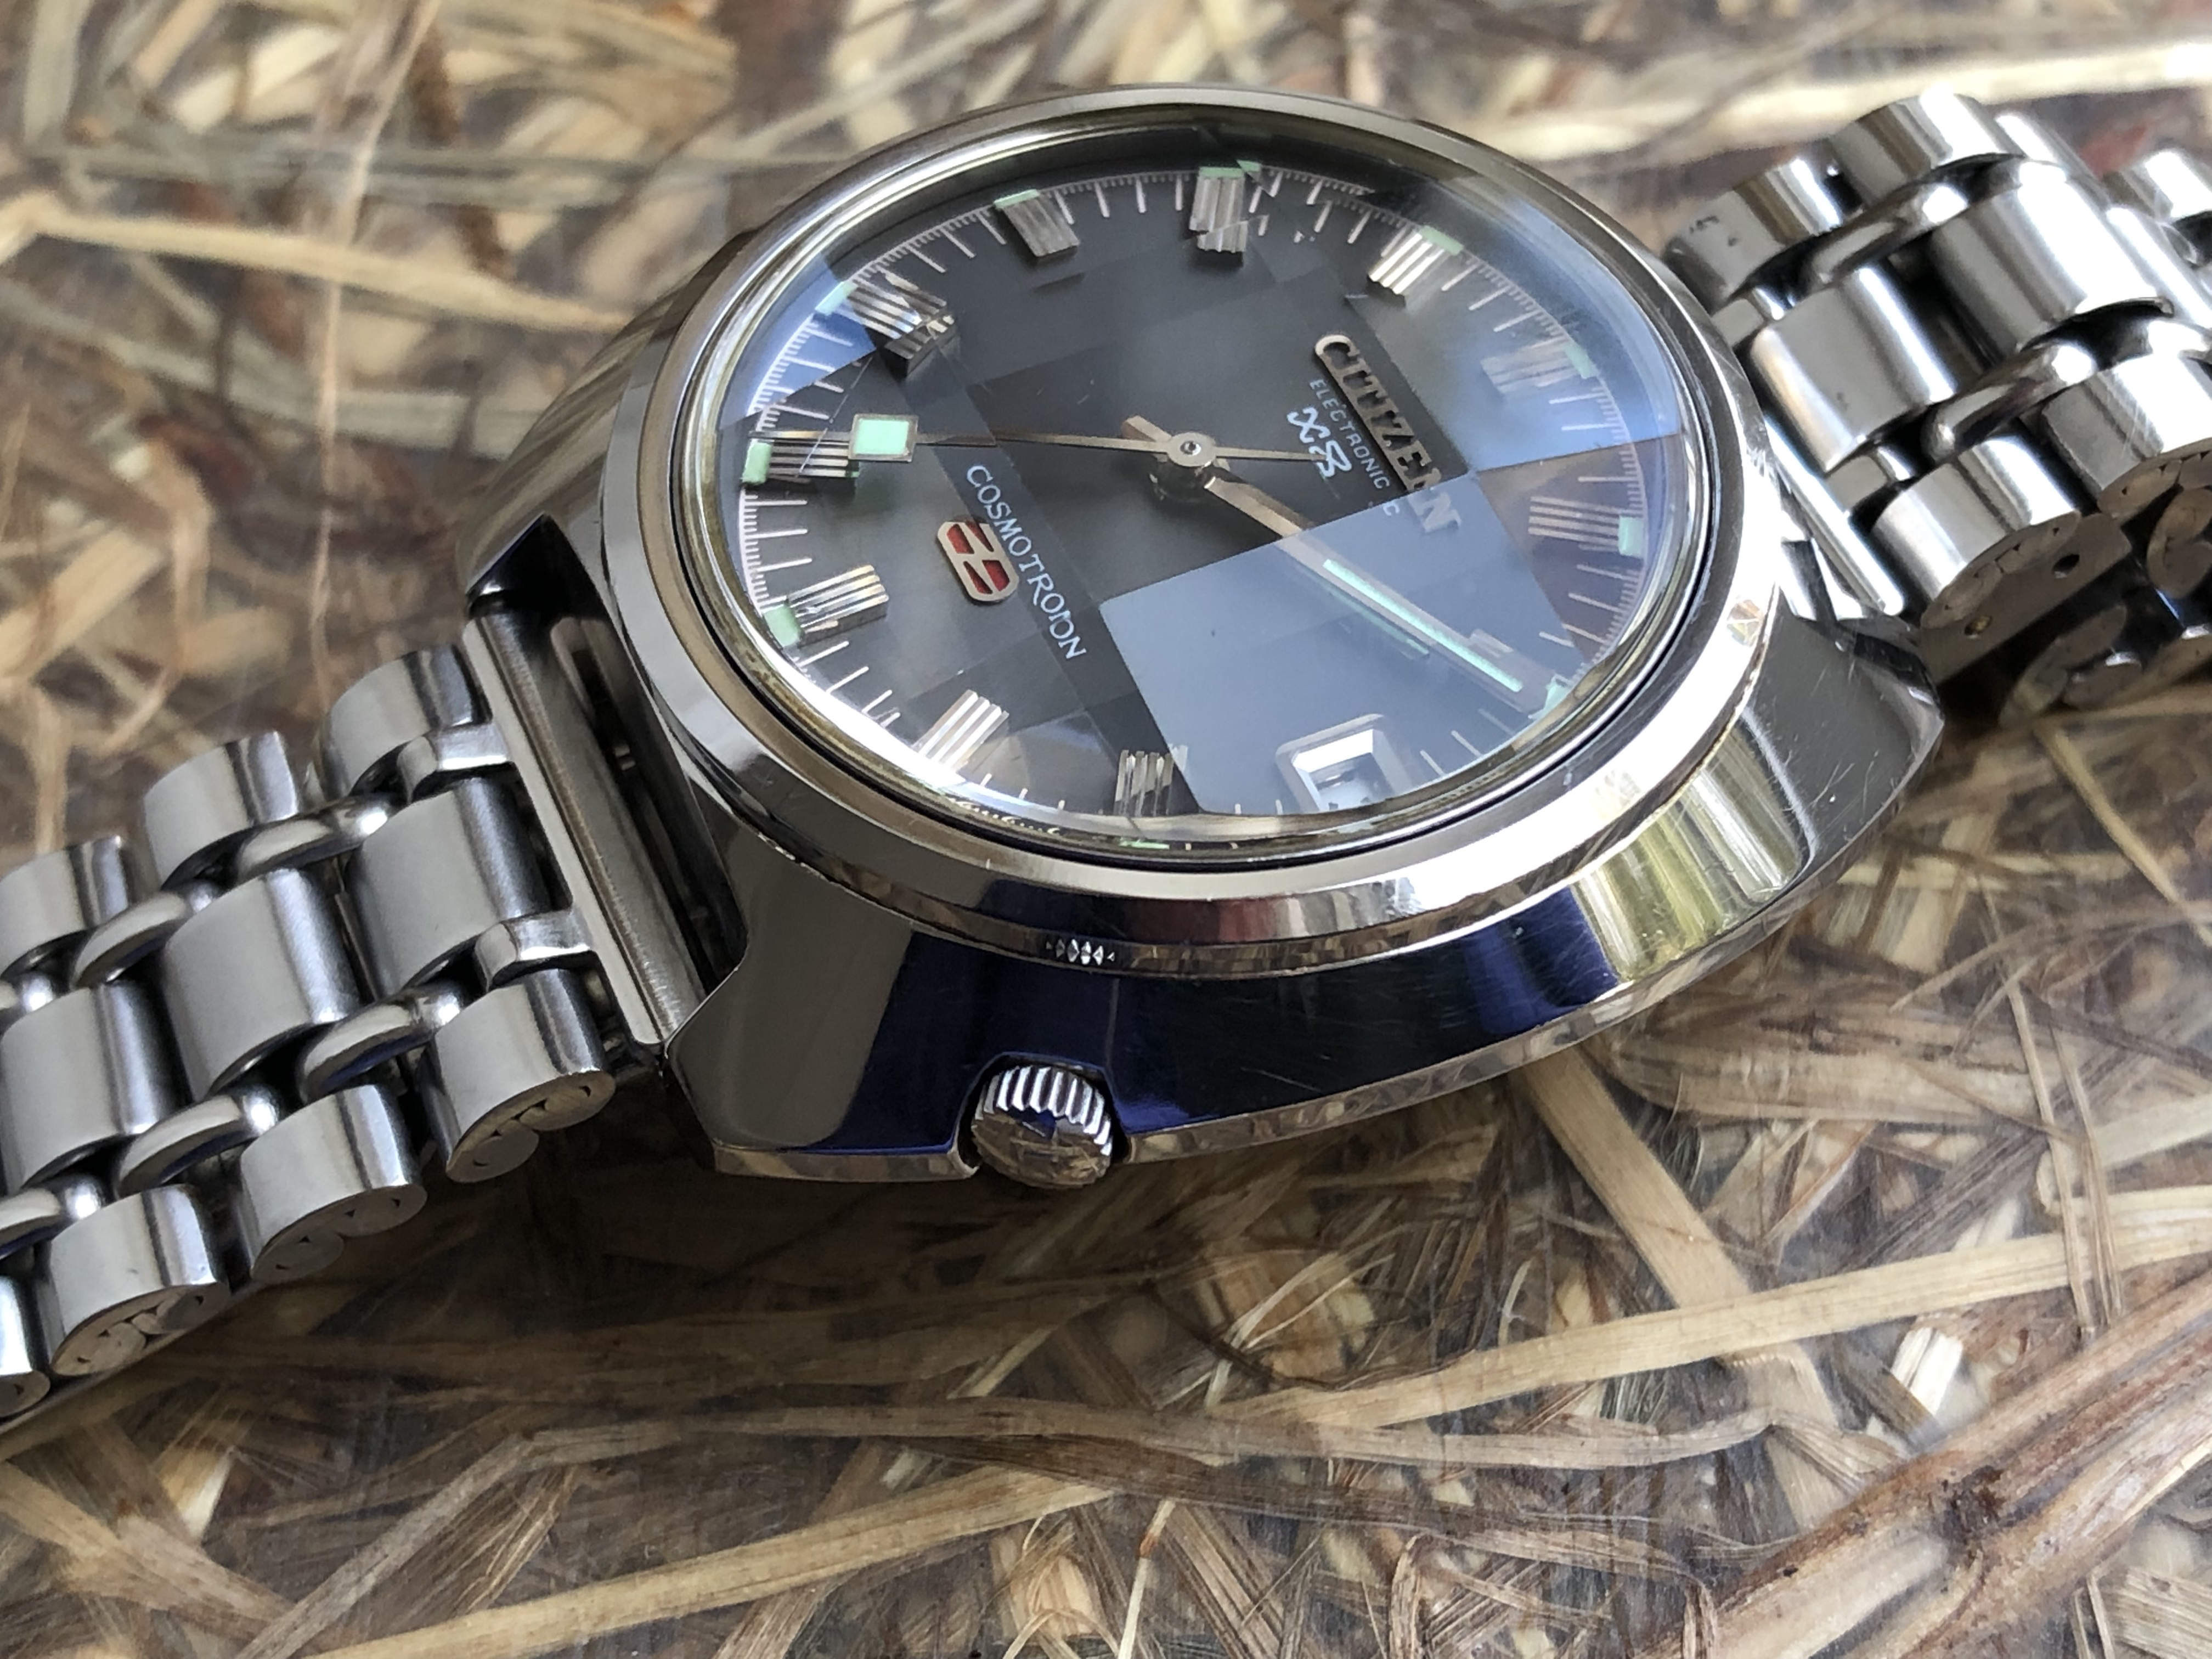 Citizen Cosmotron X8 4480-147 (Sold)